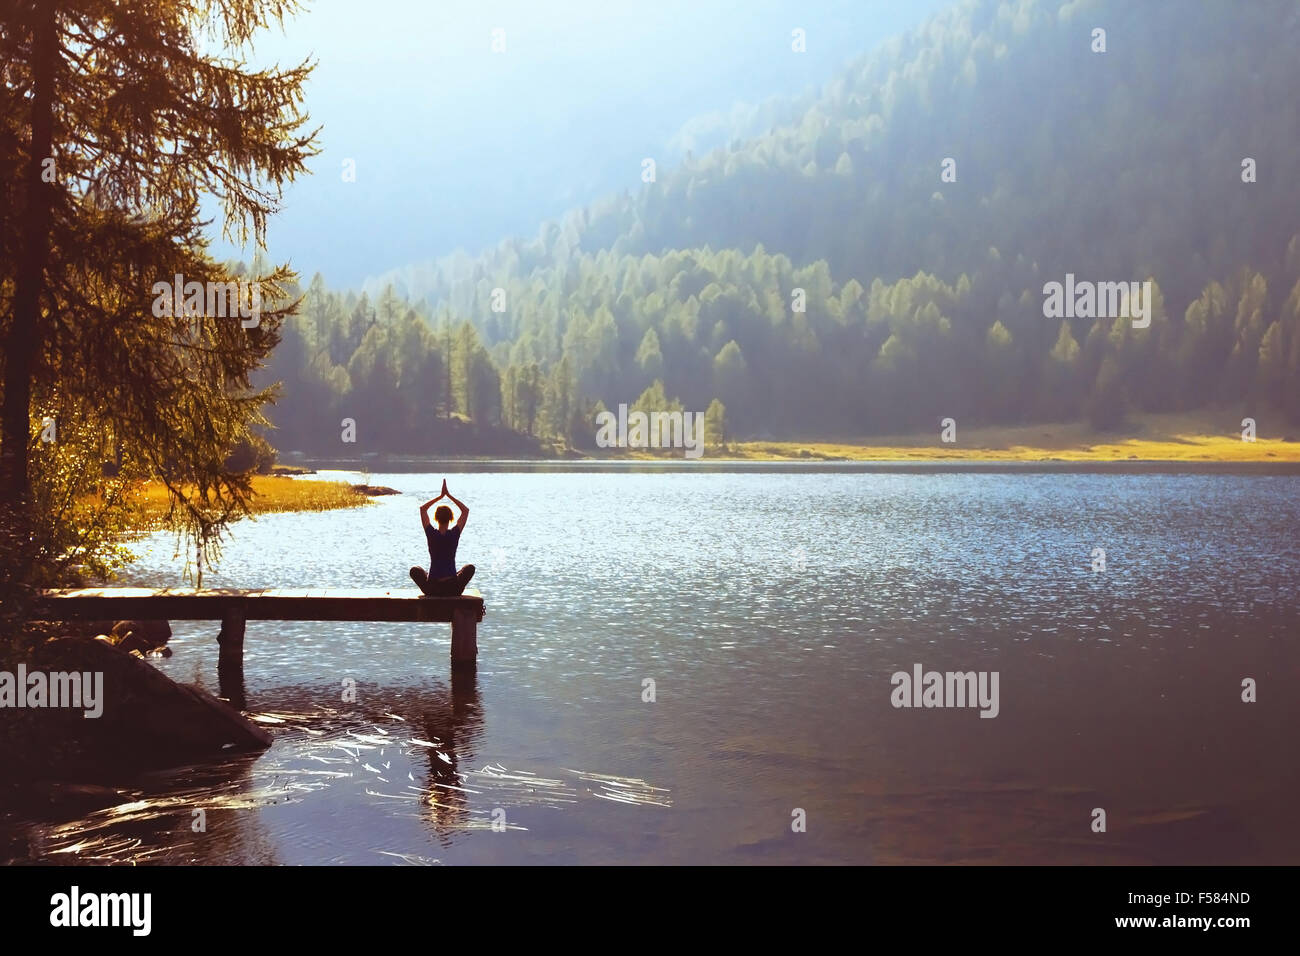 wellbeing and healthy lifestyle concept, yoga background - Stock Image